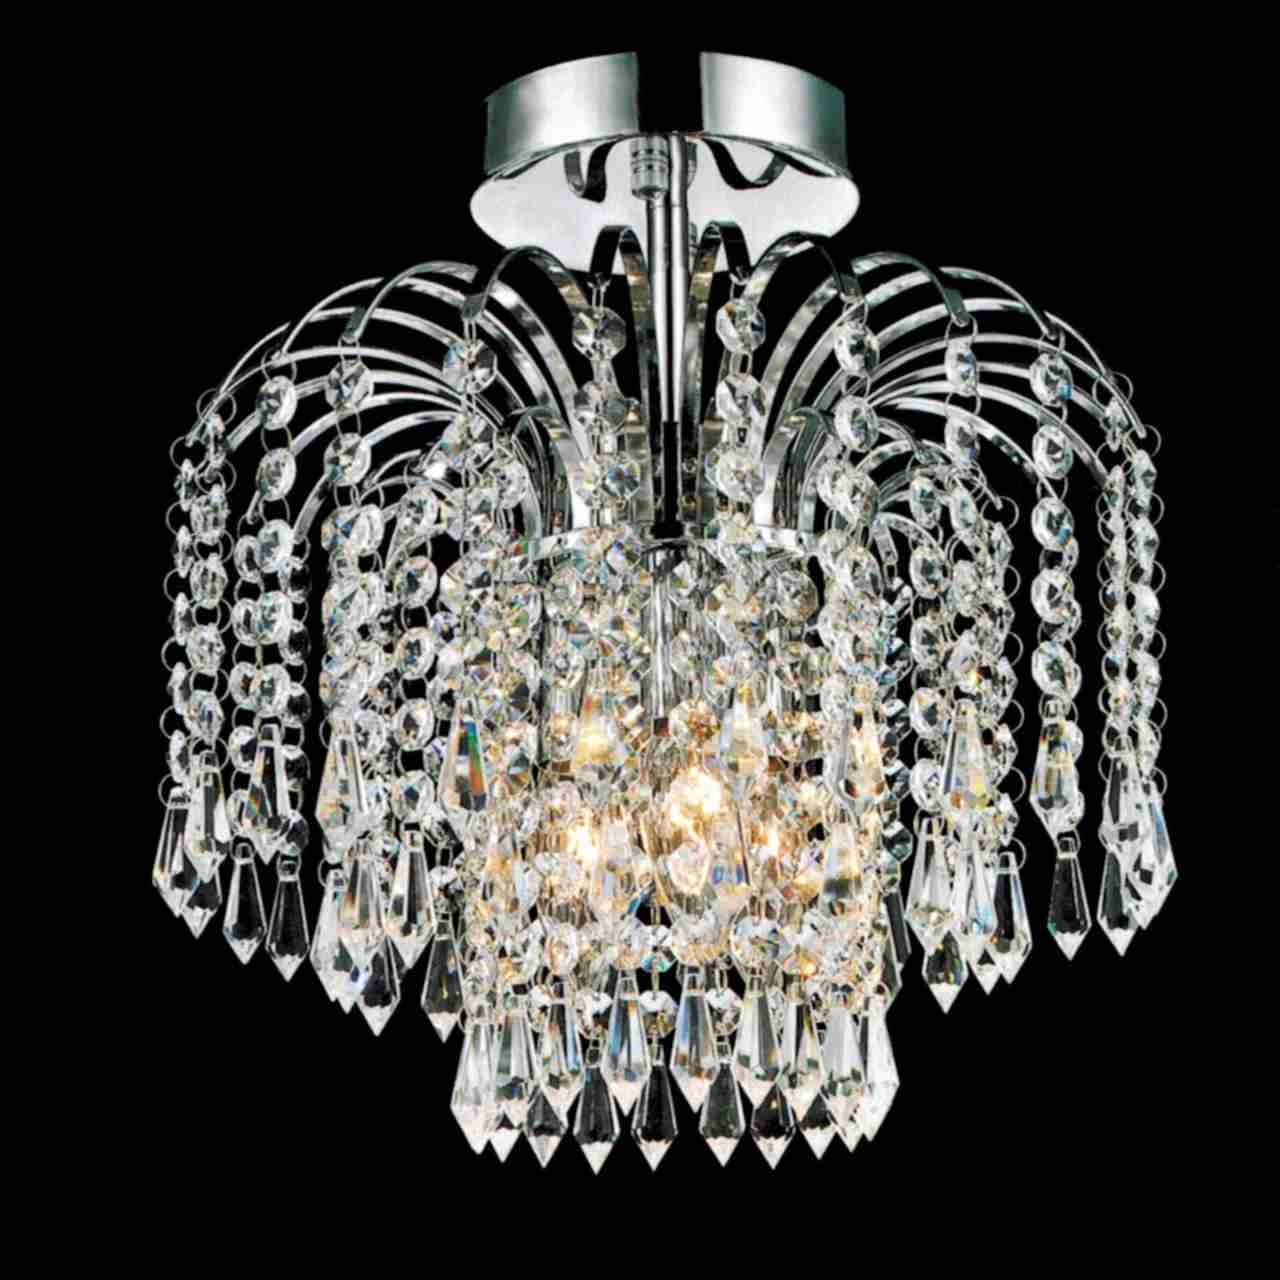 Brizzo Lighting Stores 12 Fountain Crystal Semi Flush Mount Intended For Small Chrome Chandelier (#2 of 12)